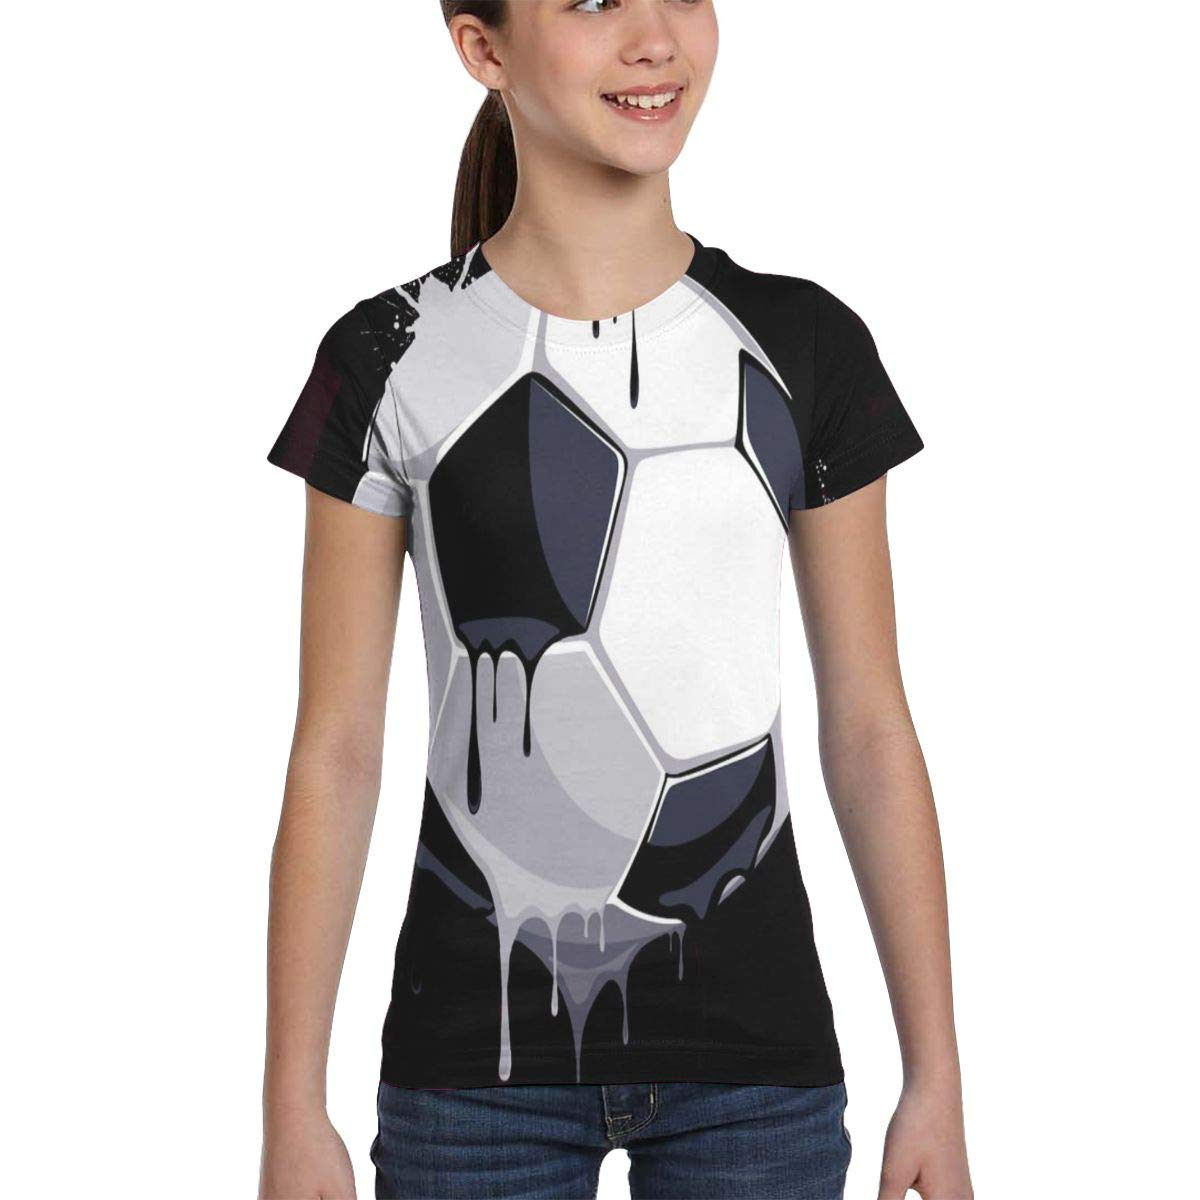 Womens Slim-Fit Short Sleeved Crewneck T-Shirt Printed Blouse for Youth Teenagers Girls Soccer Ball